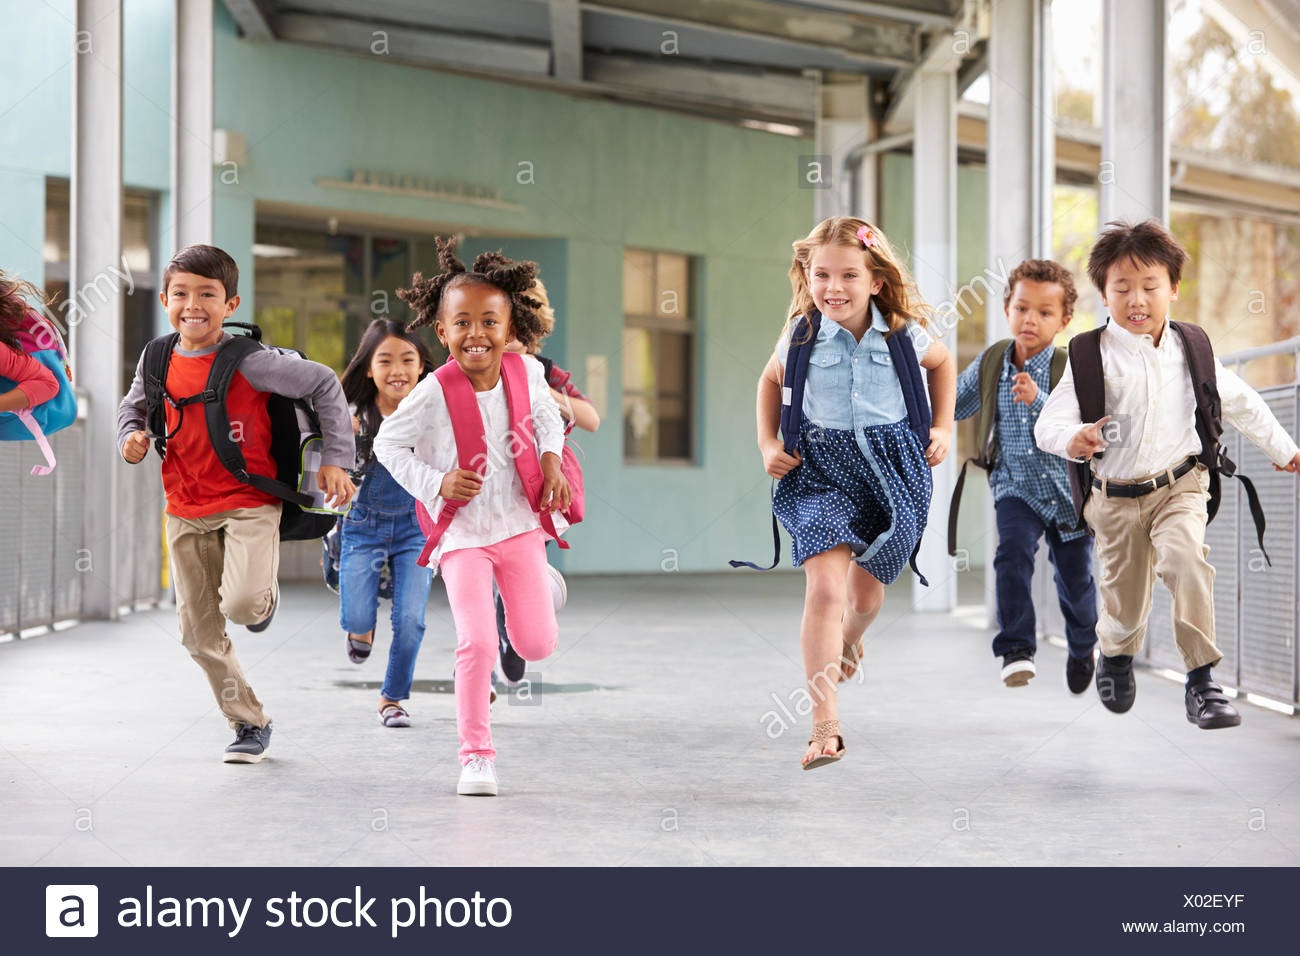 cb7cbd6e341 Group of elementary school kids running in a school corridor Stock ...